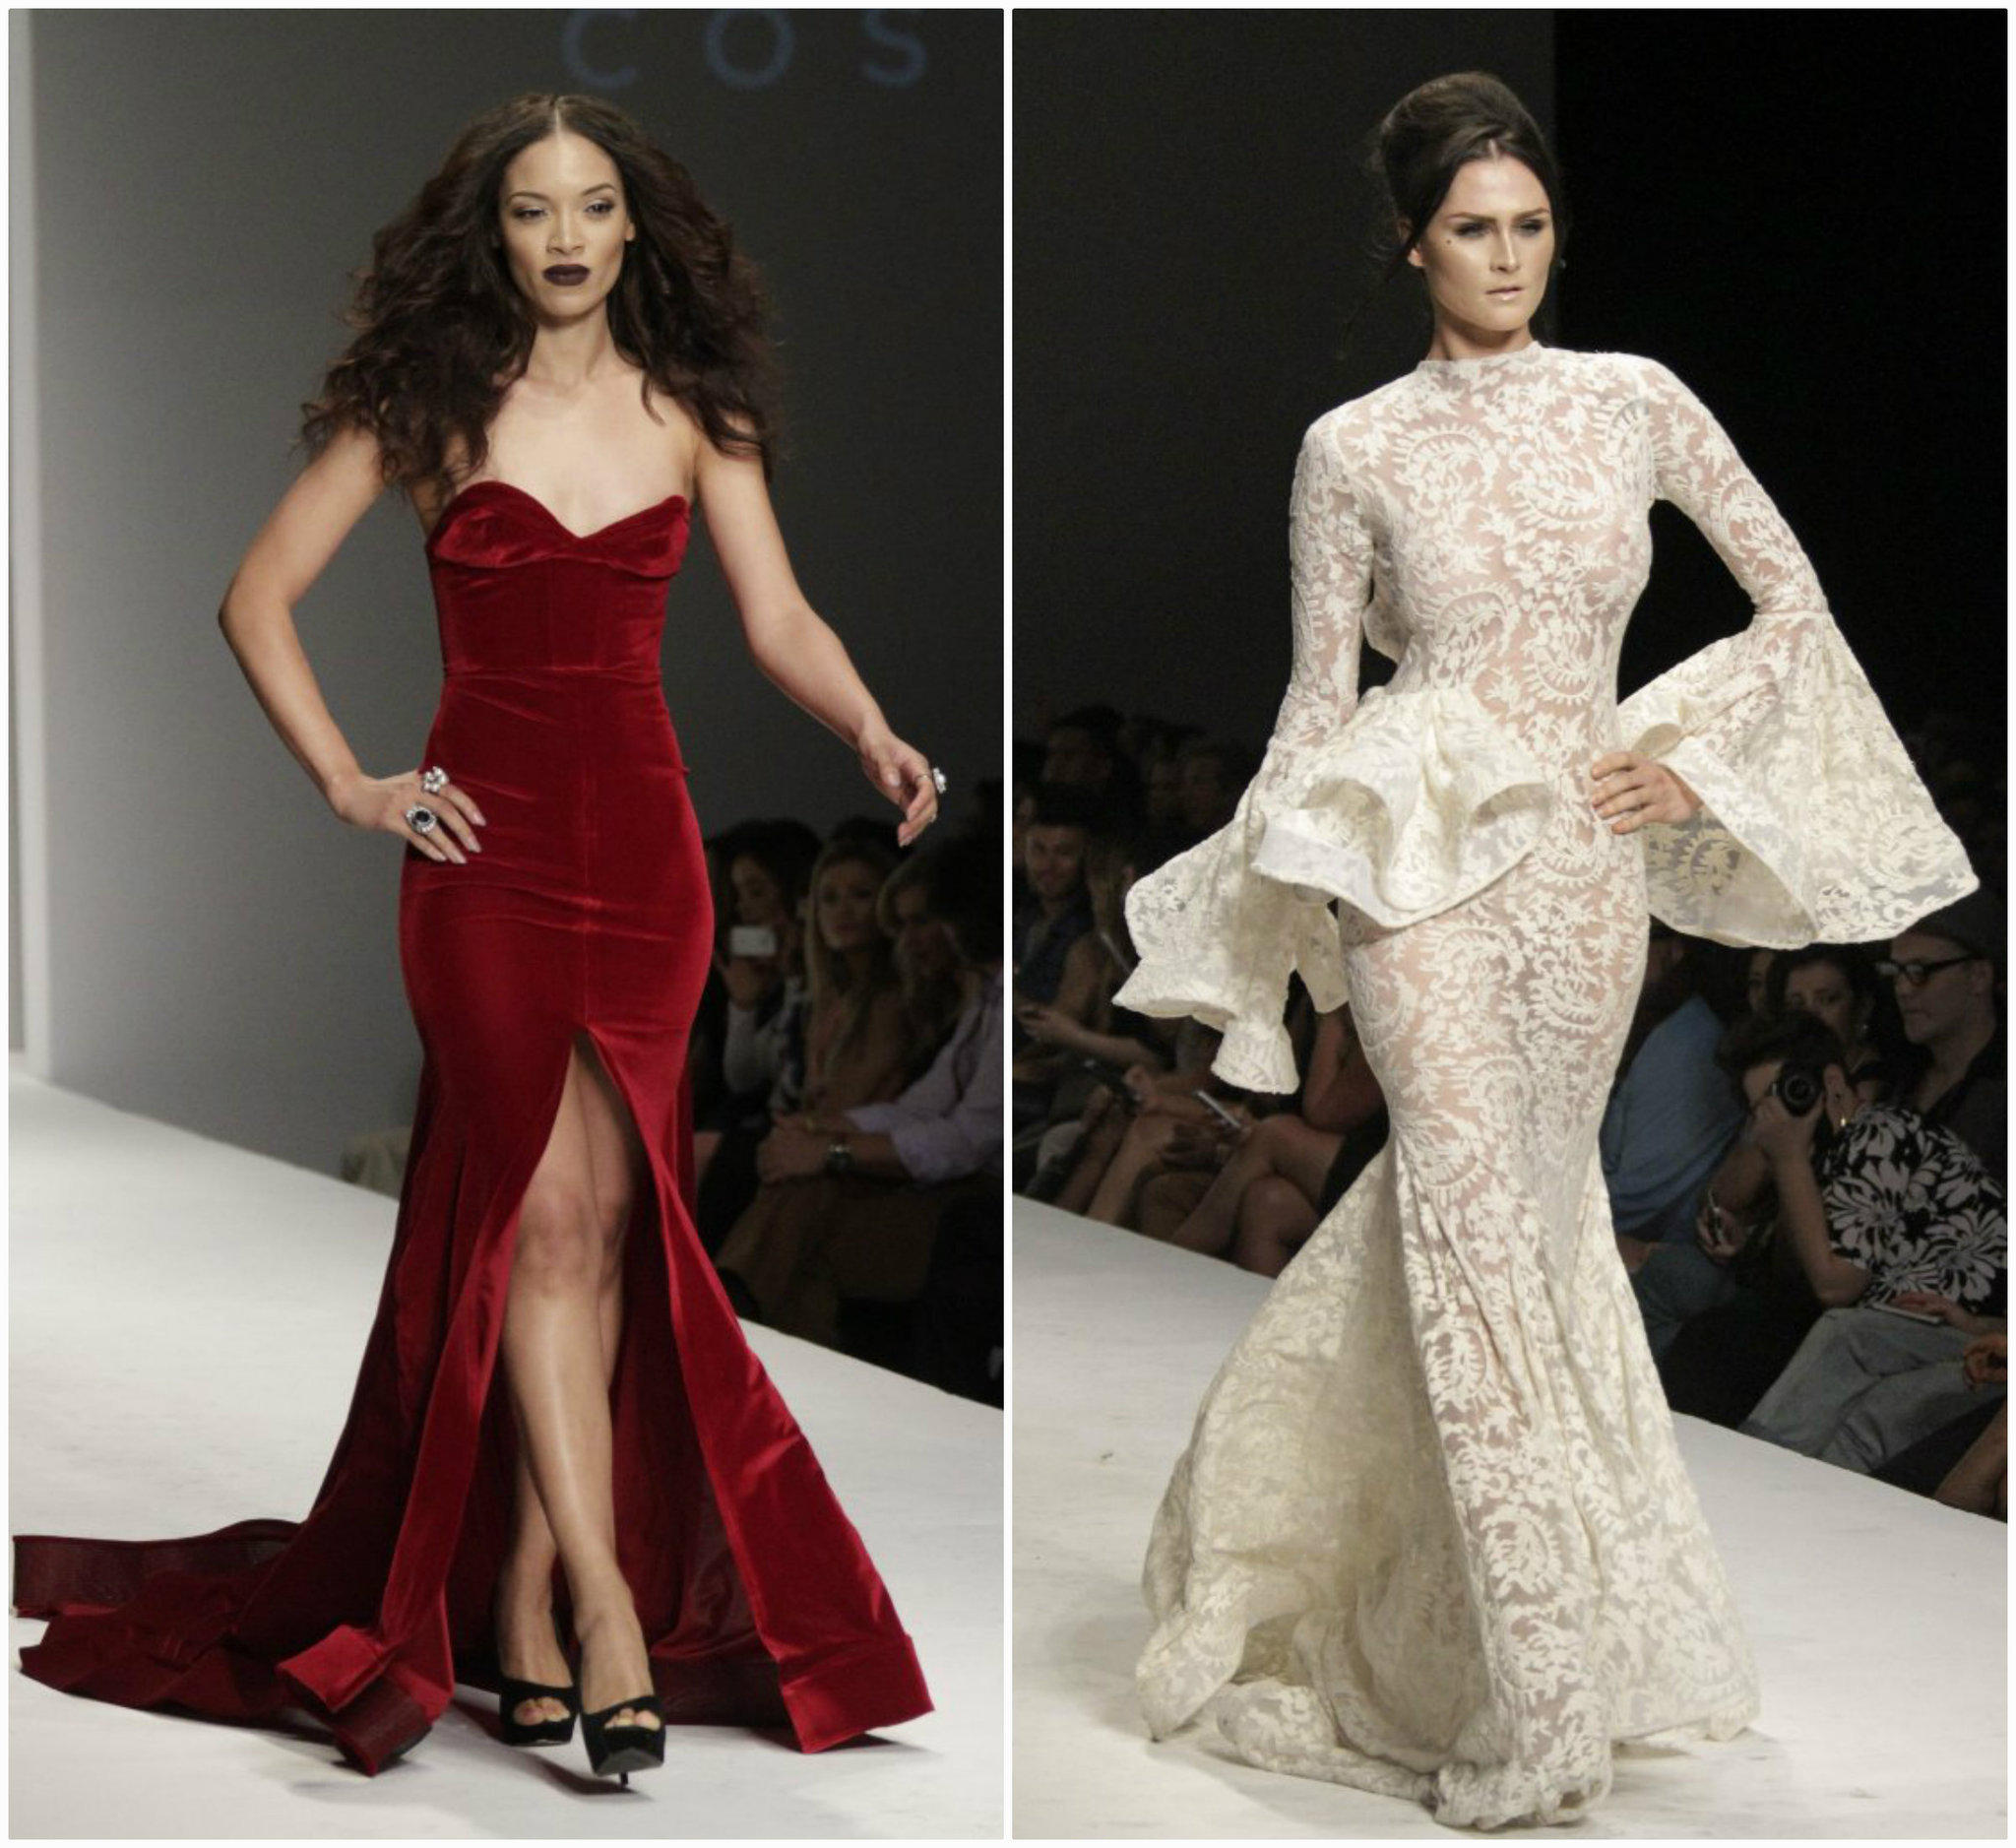 L.A. Fashion Week: Michael Costello reigns with fire and ice - latimes